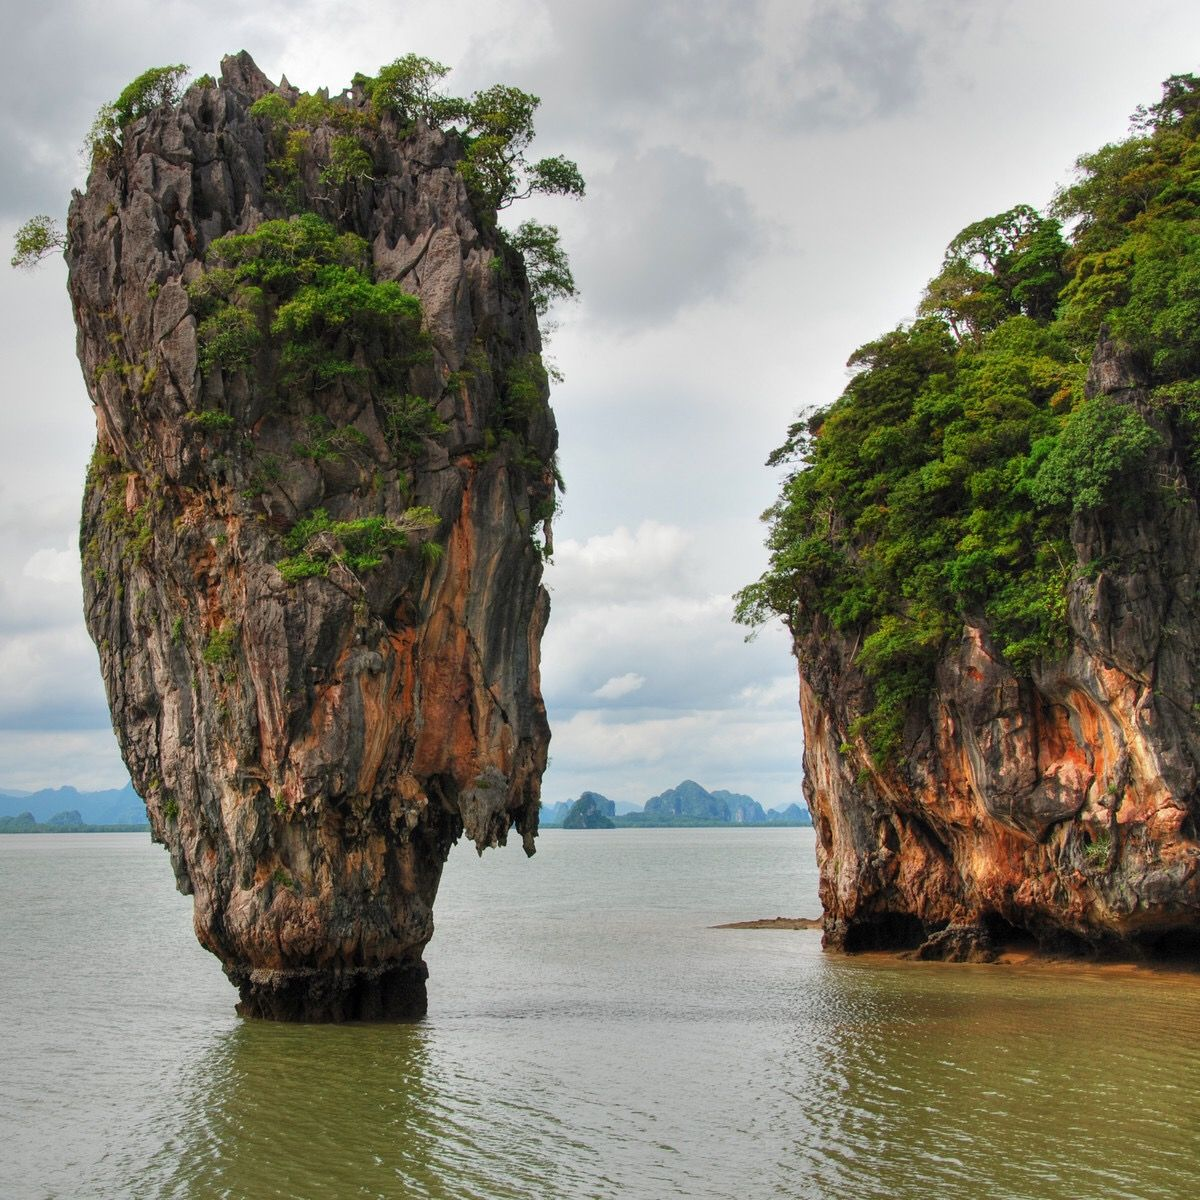 The Famous Rock At James Bond Island Khao Phing Kan In Thailand Landschaft Berge Natur